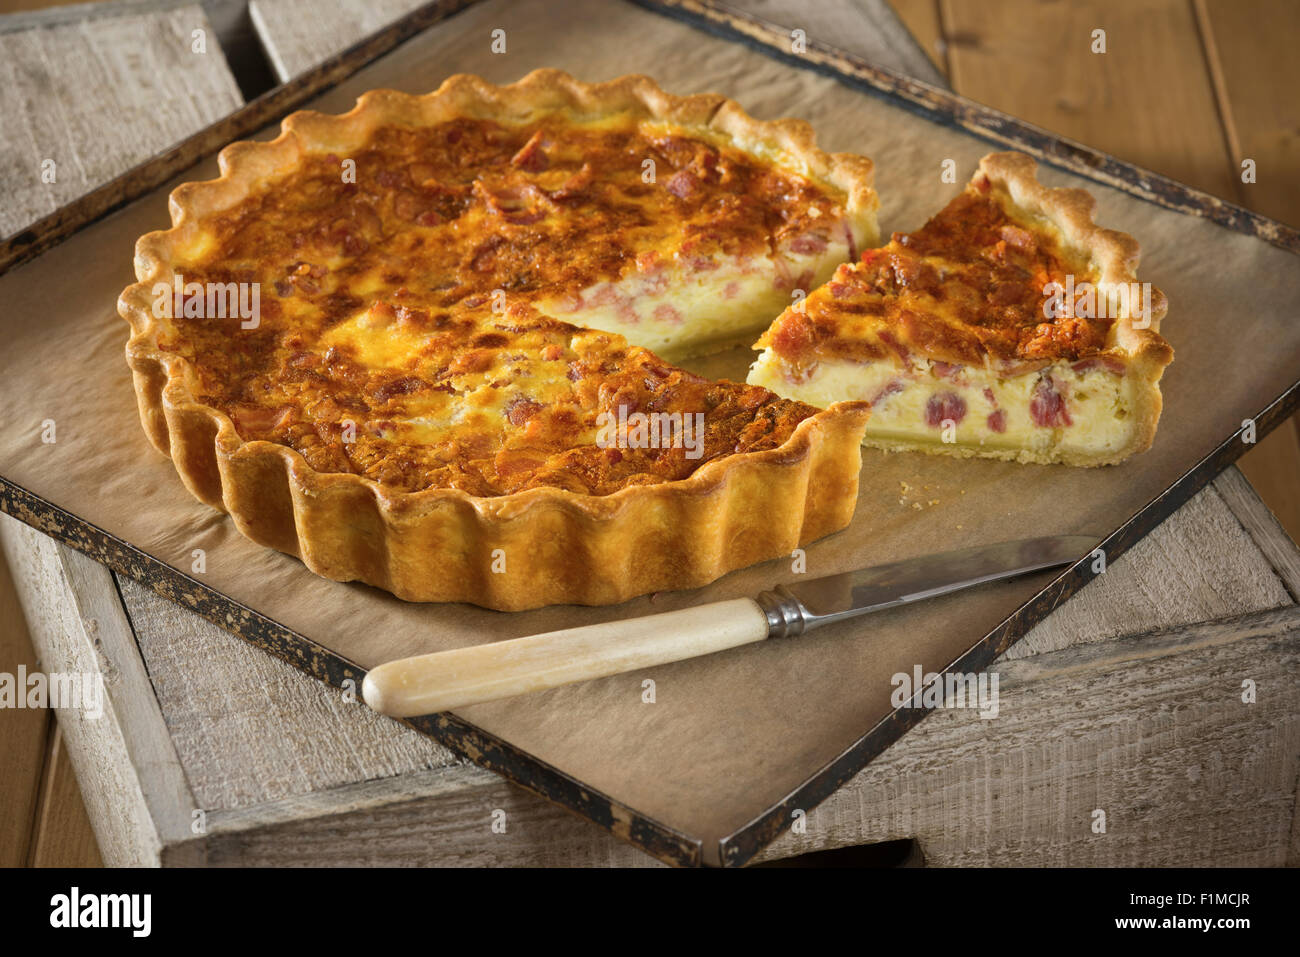 Quiche lorraine french egg and bacon tart france food for Cuisine francaise